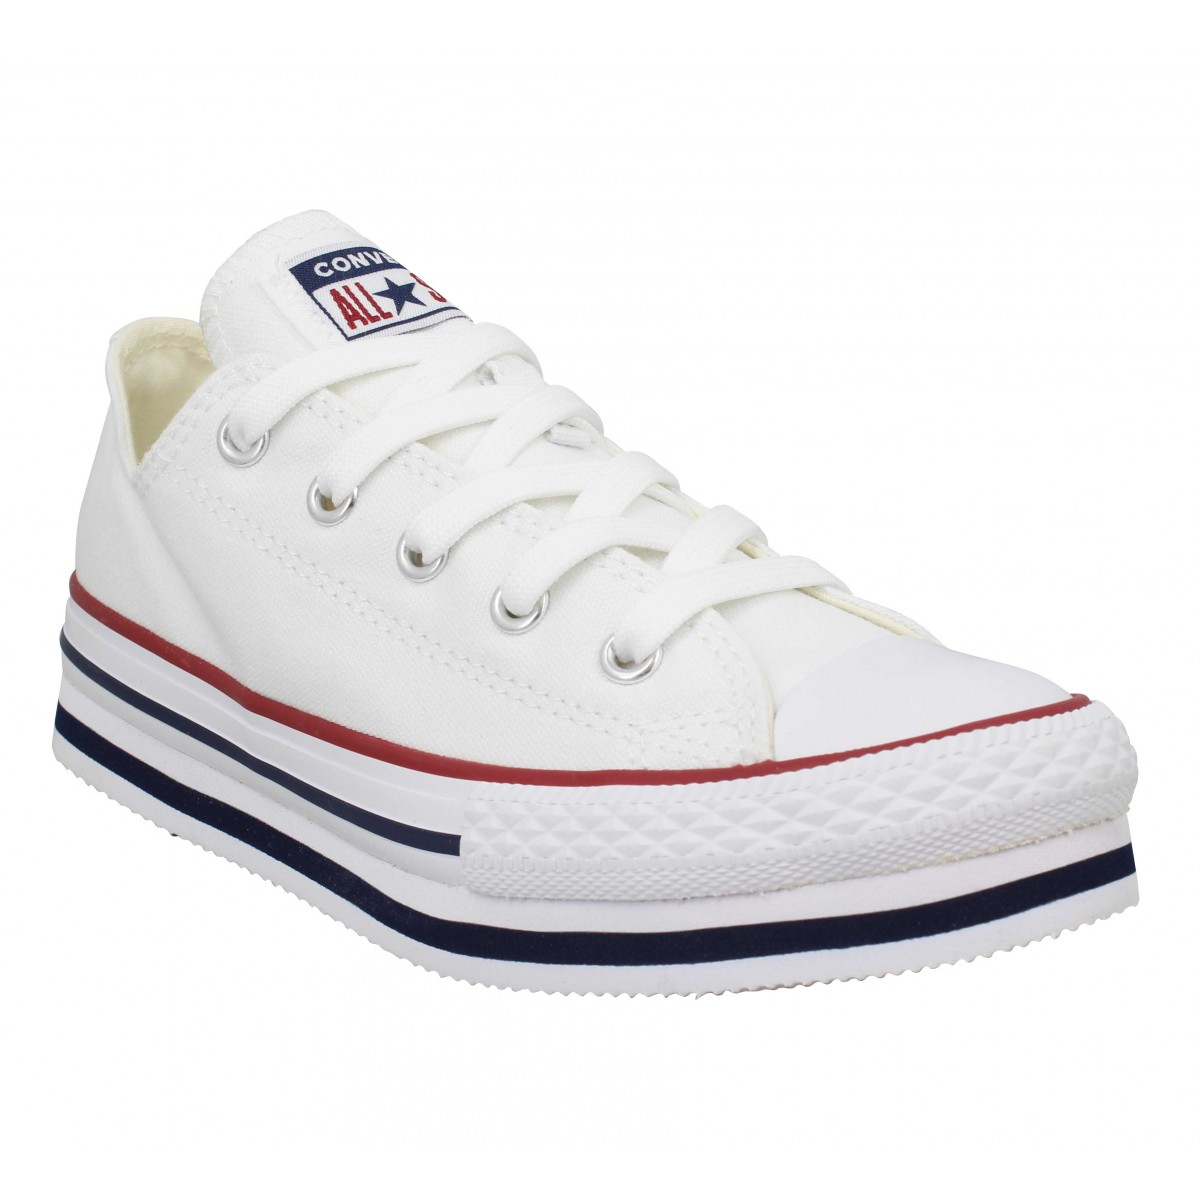 Baskets CONVERSE Chuck Taylor All Star PlatForm Eva toile Enfant Blanc